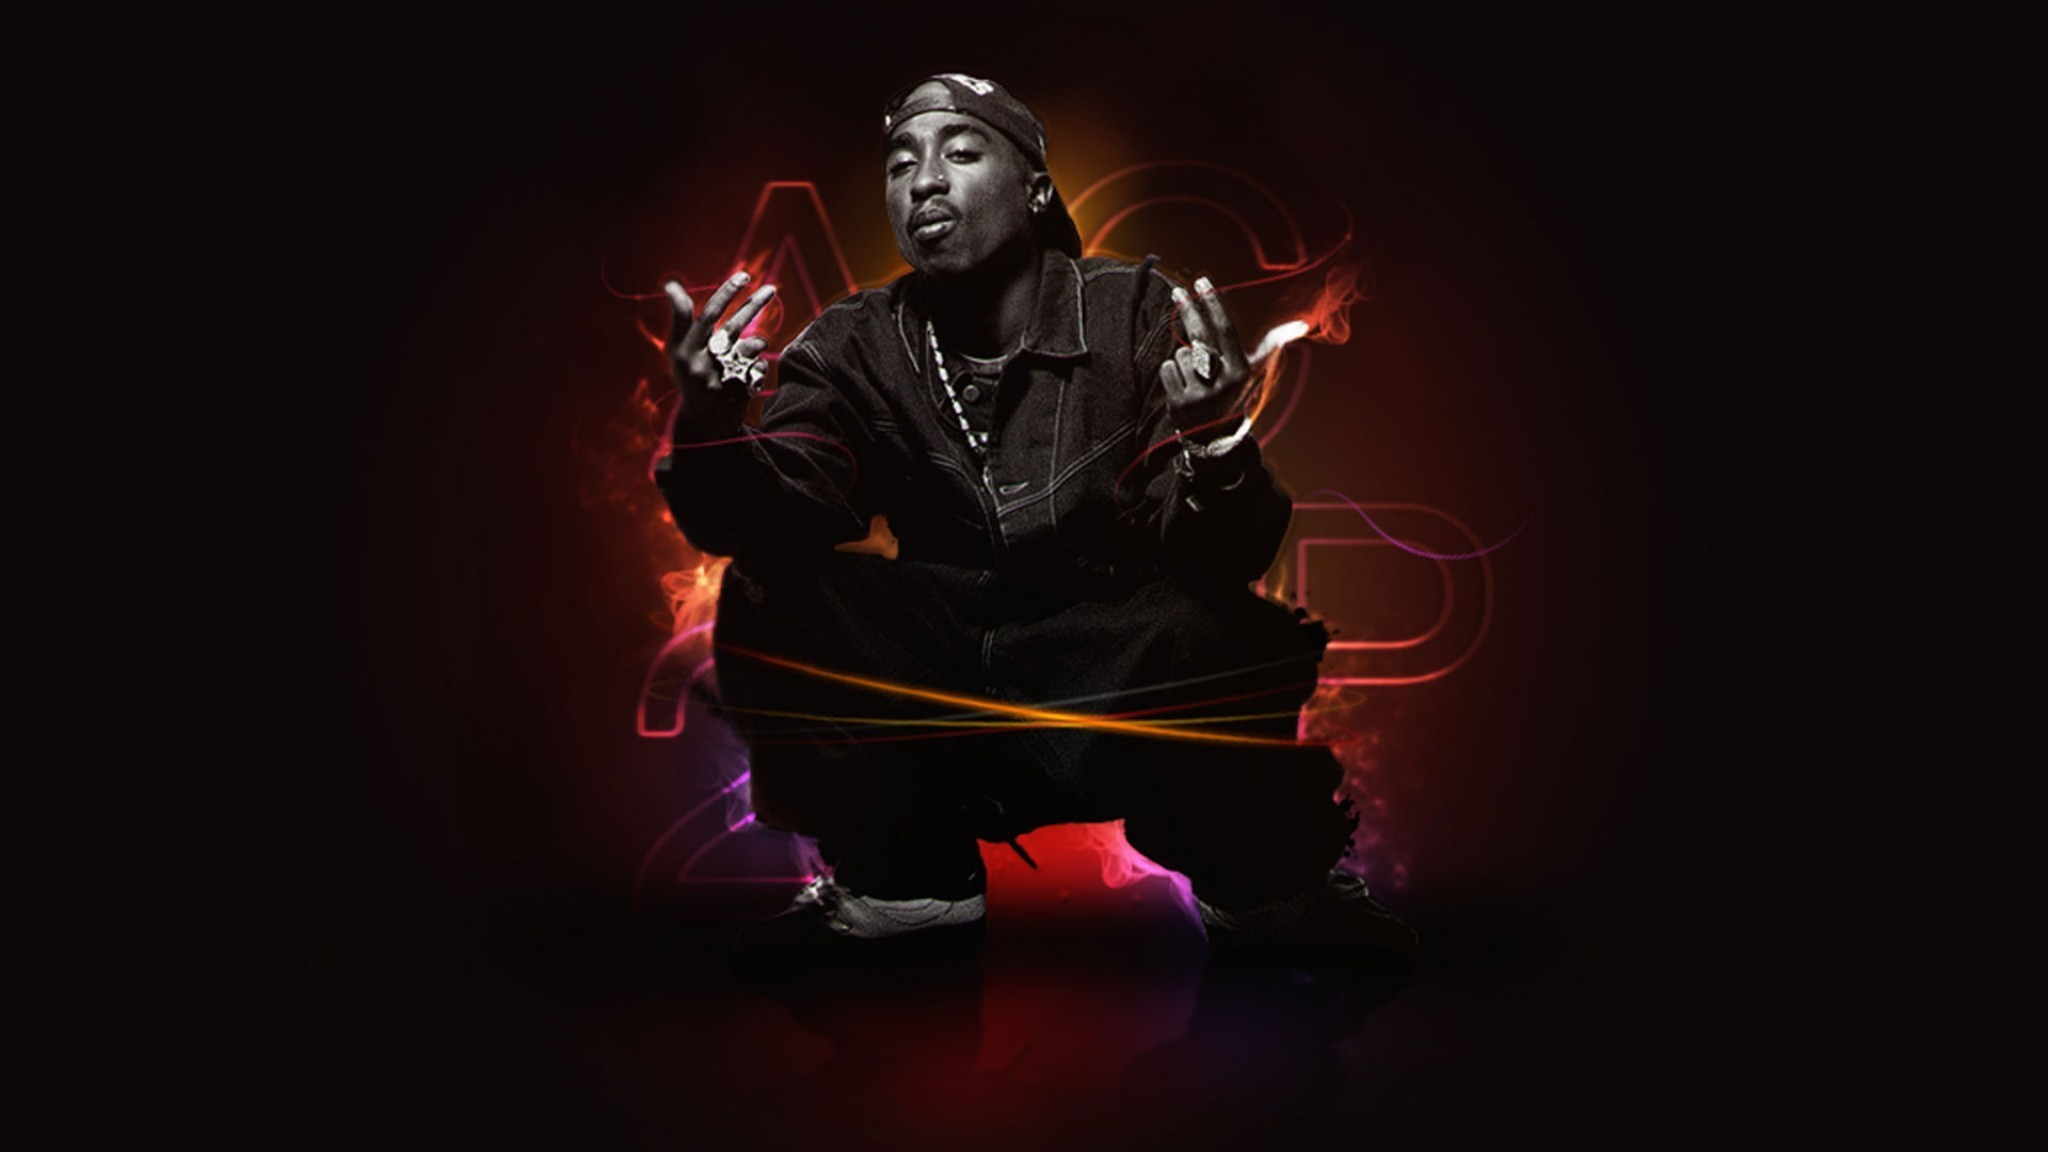 Tupac and biggie wallpaper for Wallpaper sources